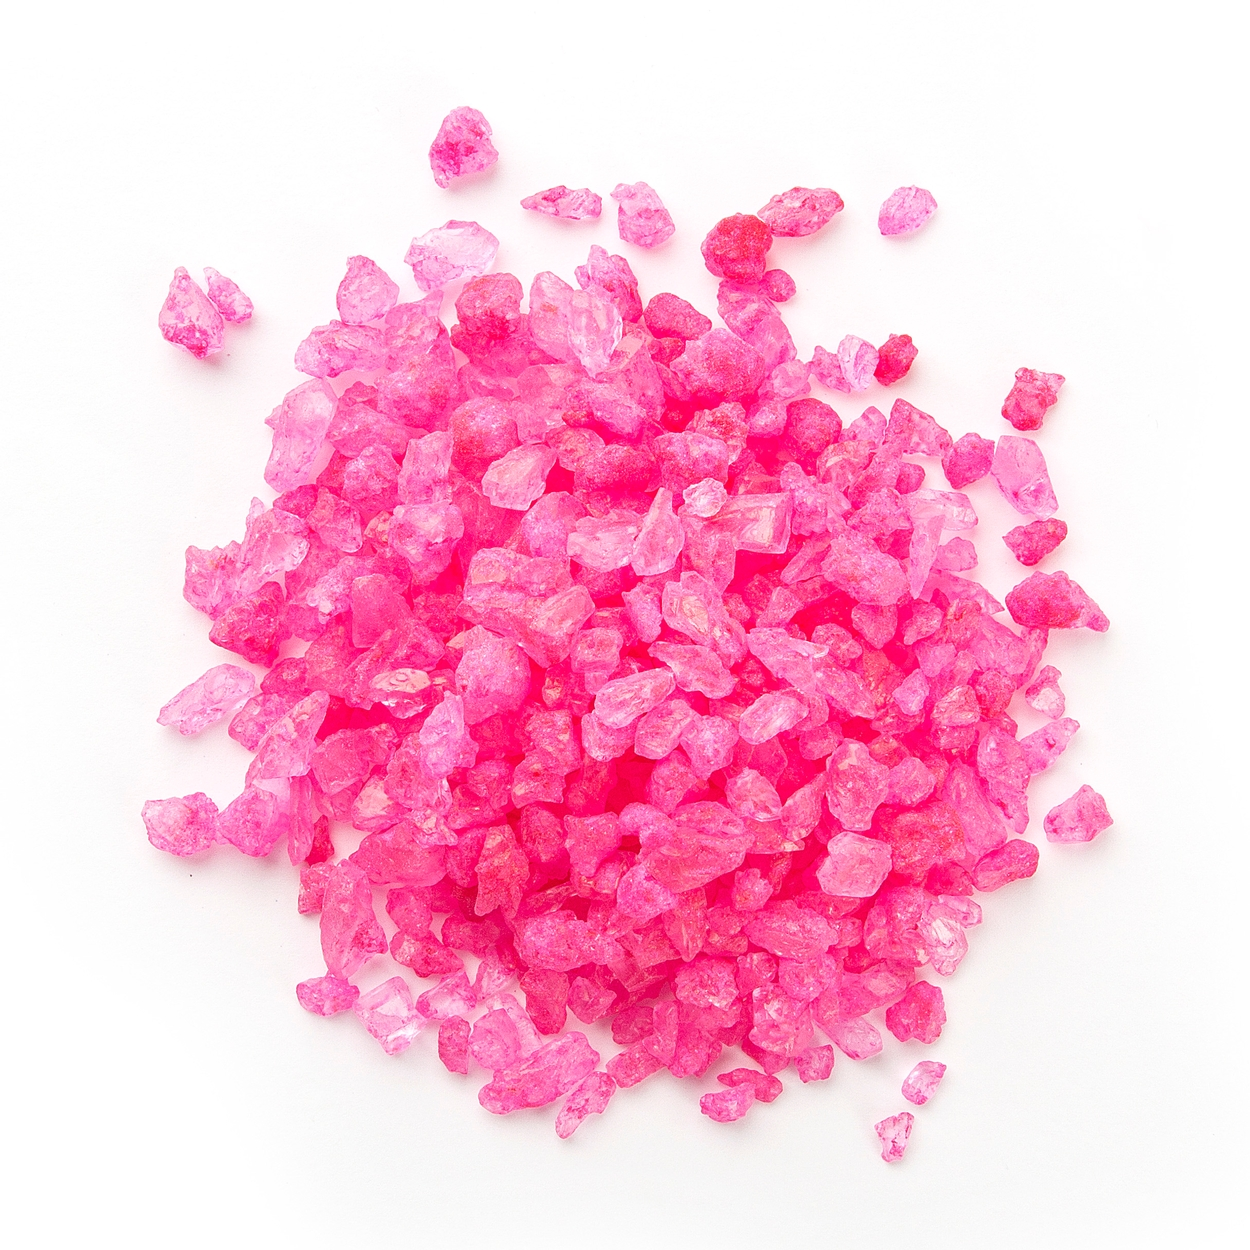 Pink Rock Candy Crystals - Cherry • Rock Candy & Sugar Swizzle ...